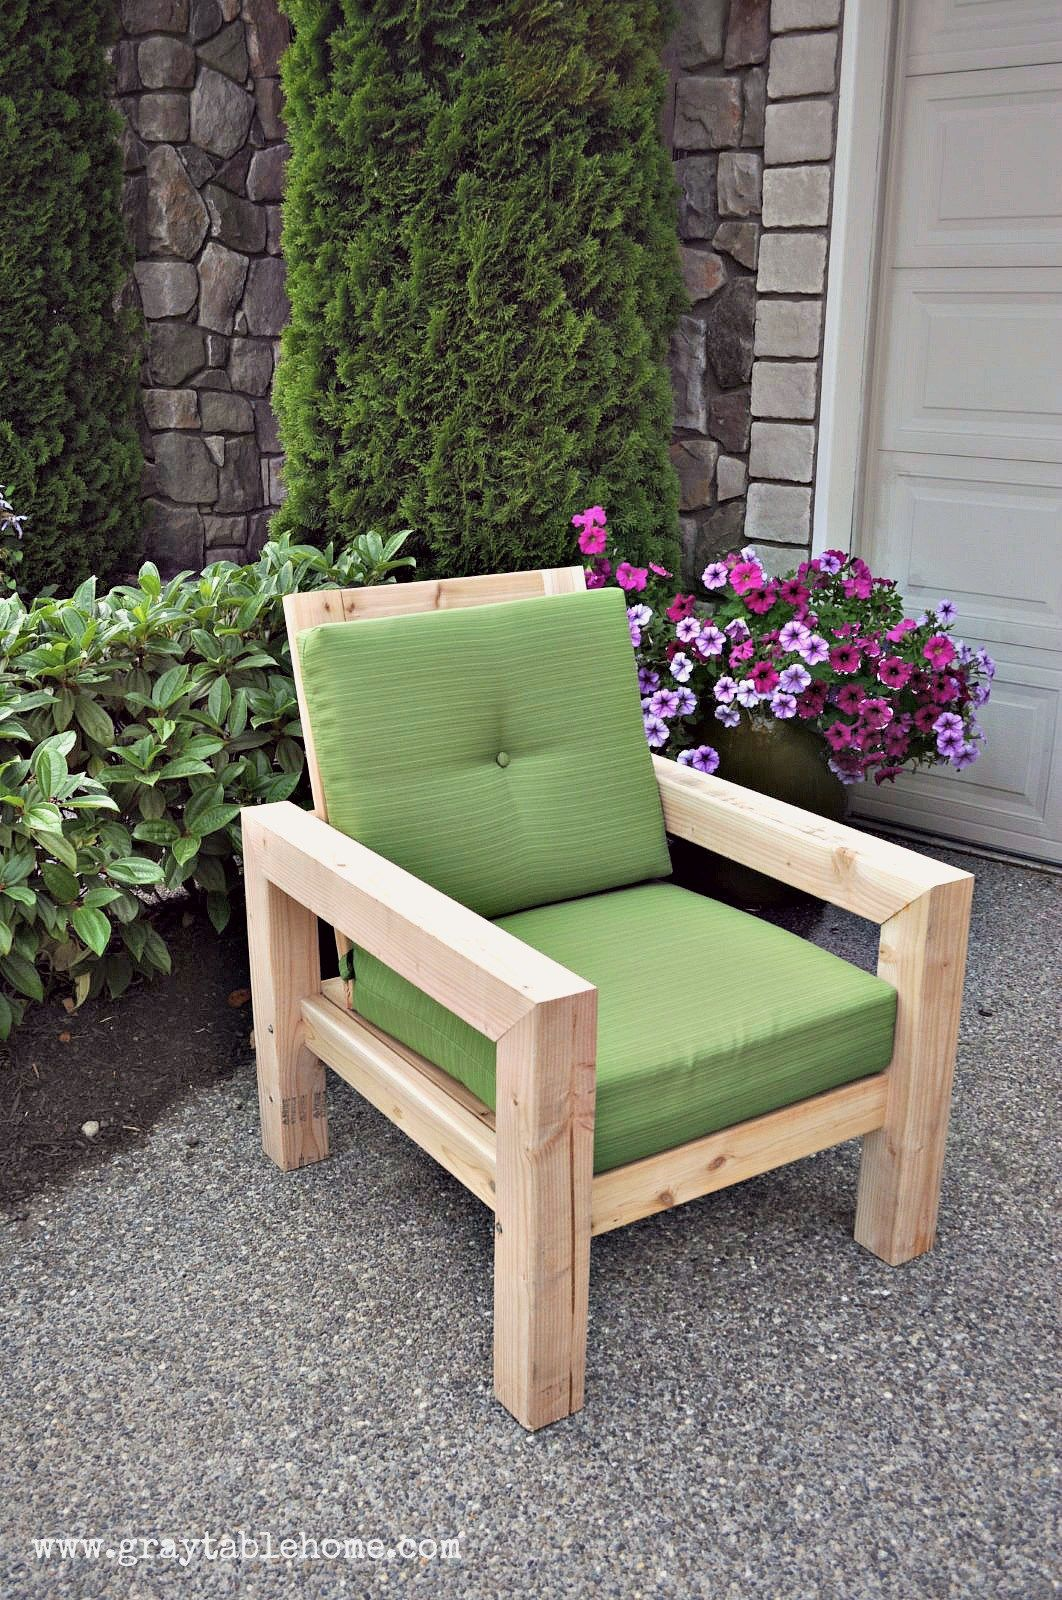 Modern Outdoor Chair Diy Modern Rustic Outdoor Chair Plans Using Outdoor